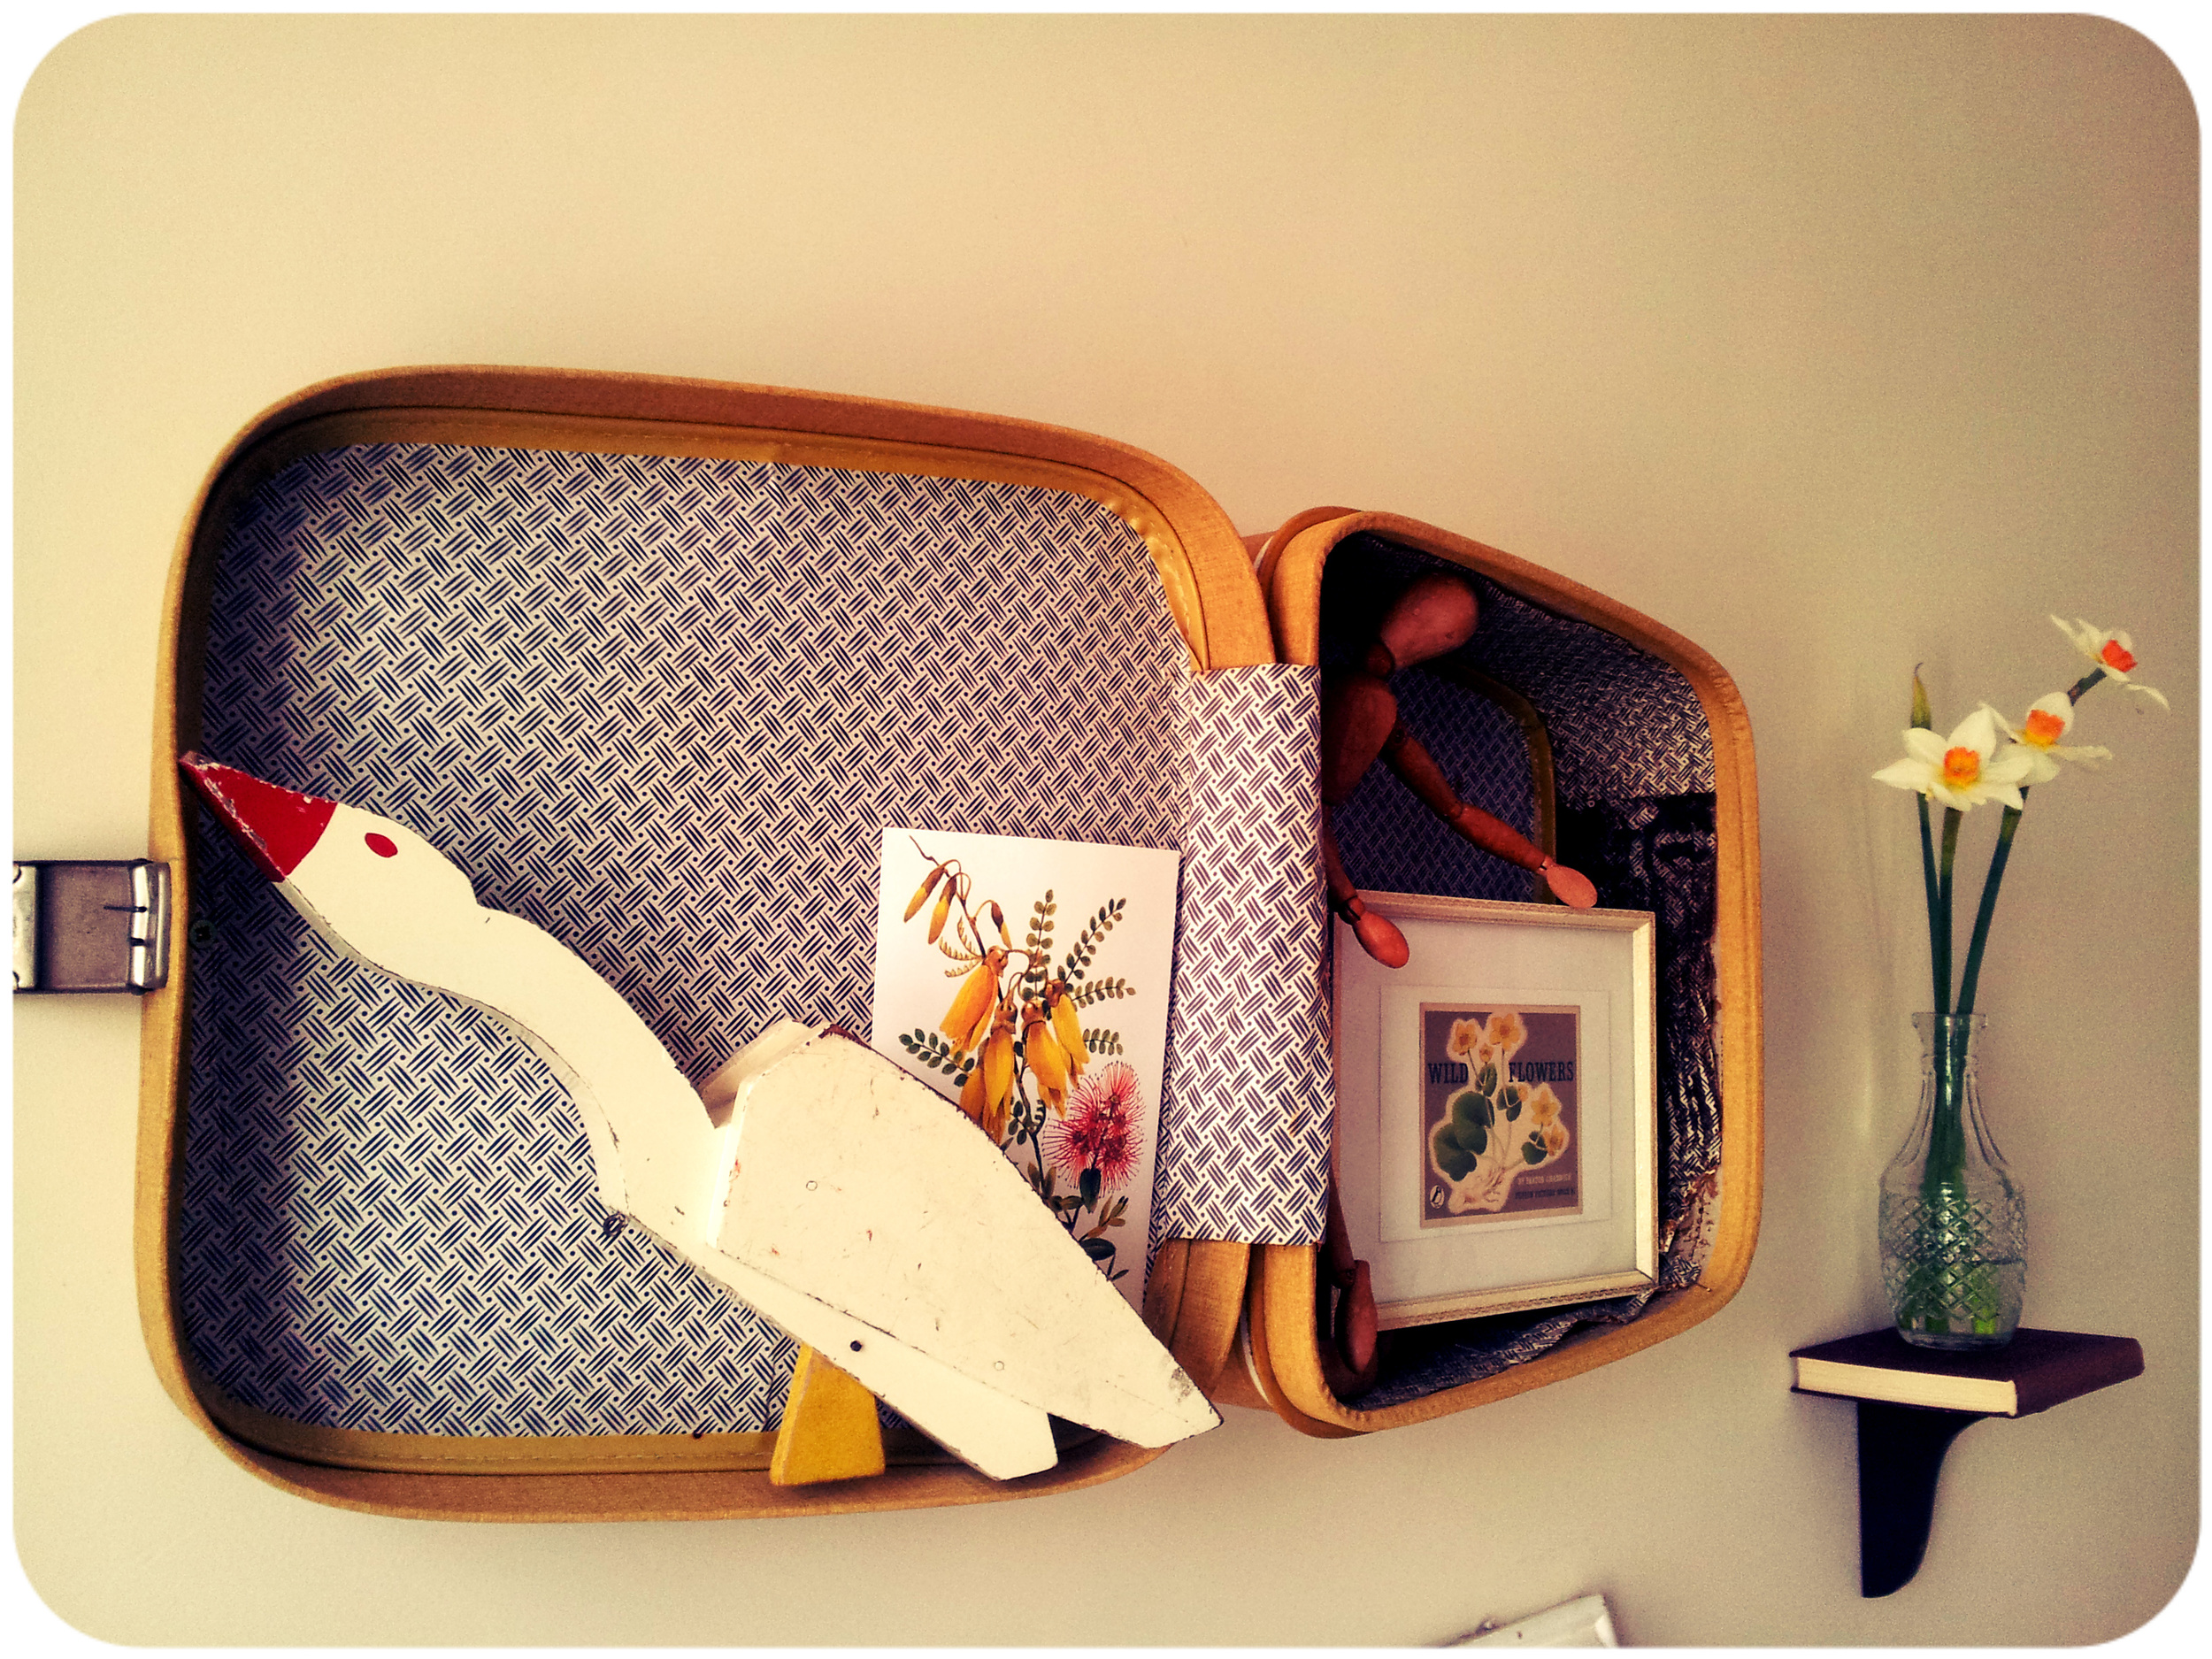 It's a vintage suitcase, er, stuck on the wall, y'know?